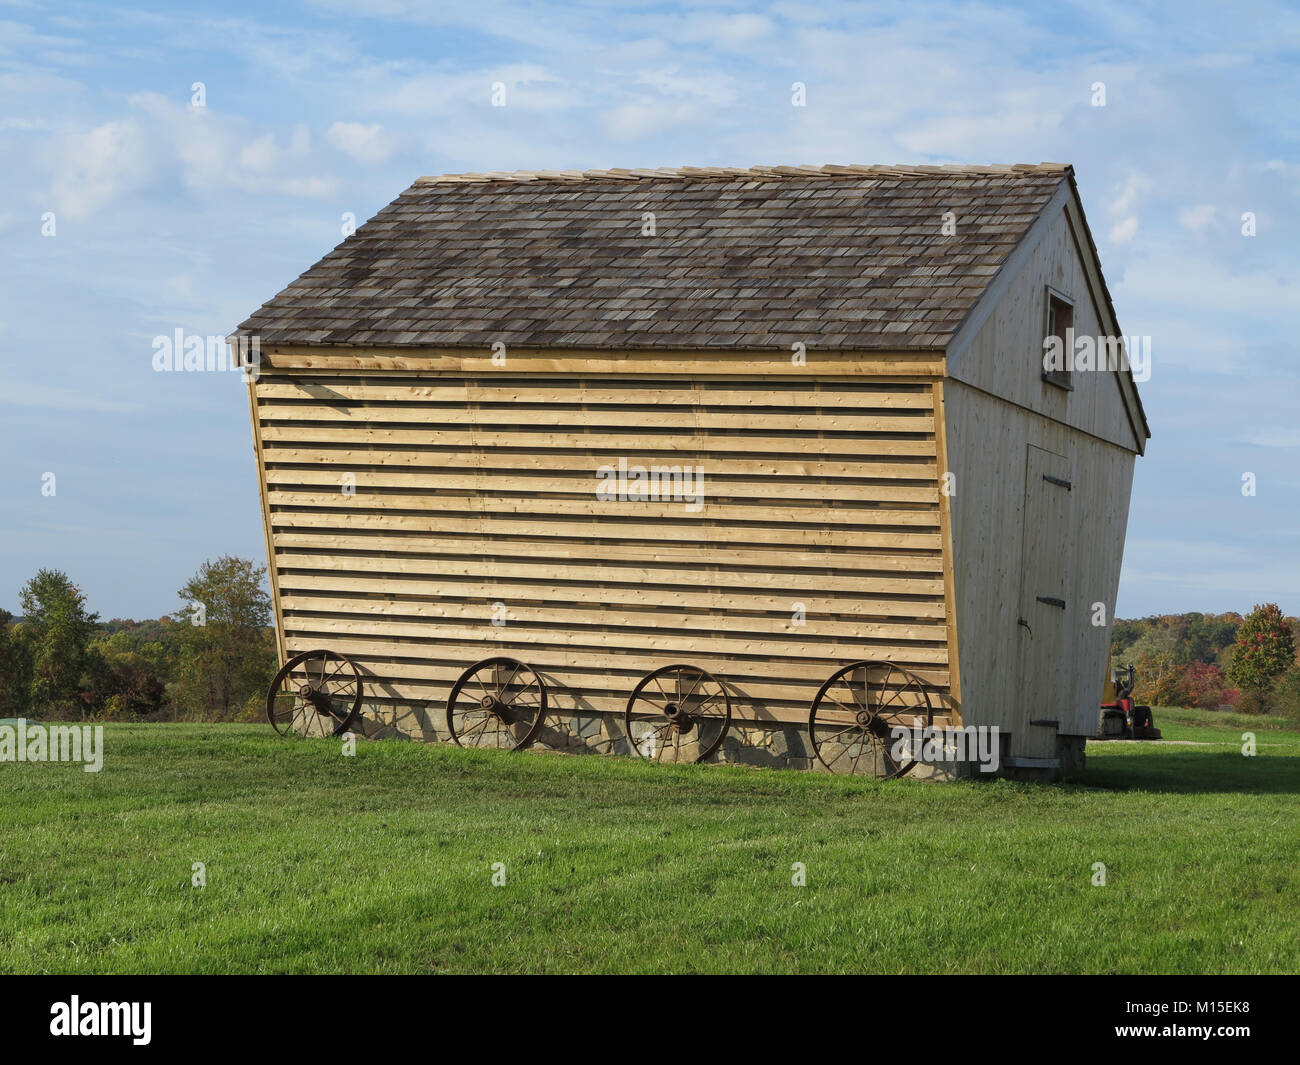 Picturesque Wooden Barn on a Grassy Field Stock Photo